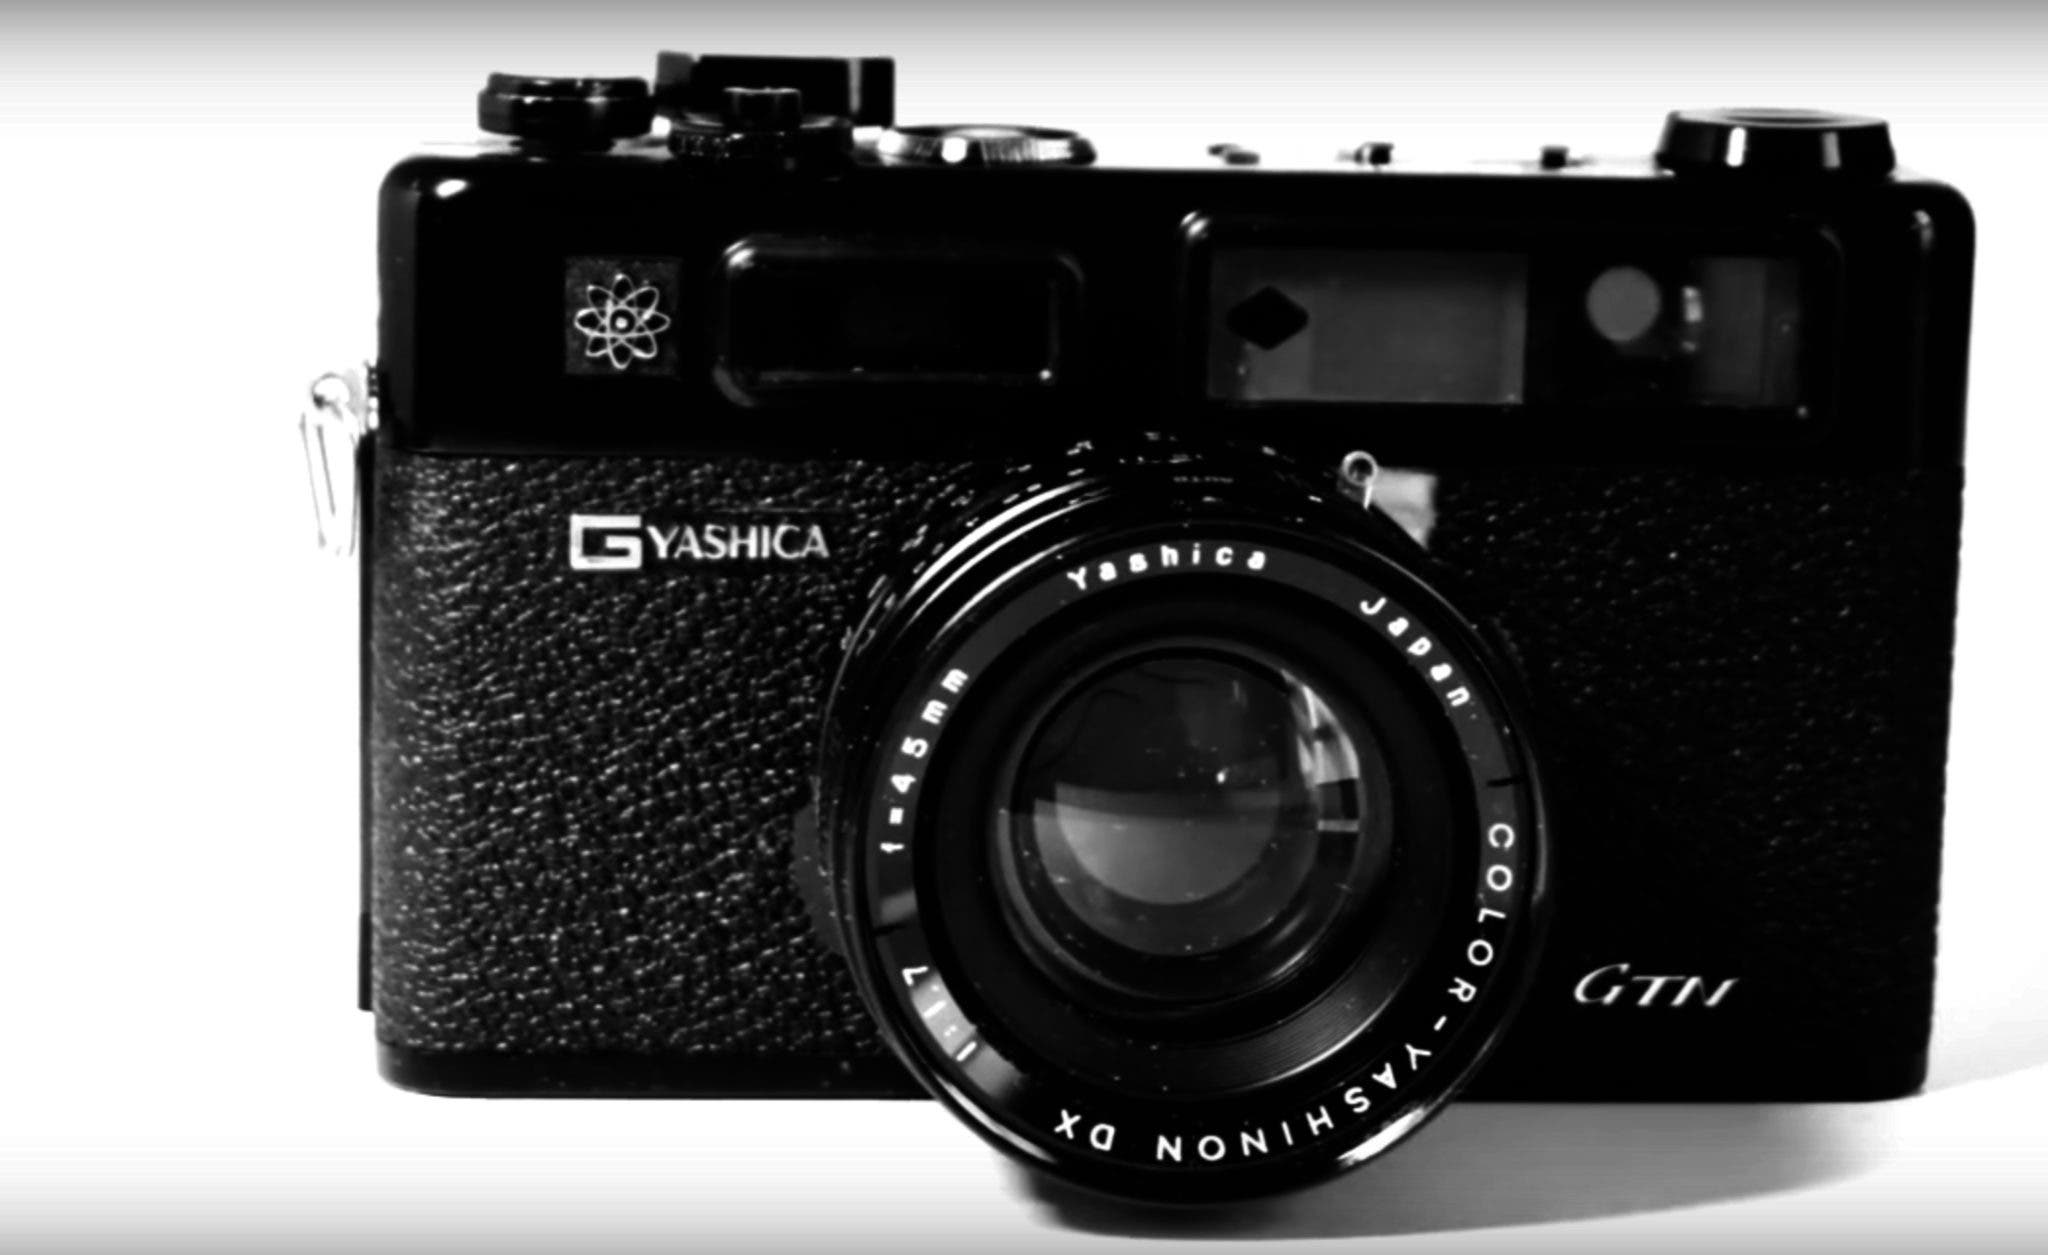 Vintage Camera Review: Yashica Electro 35 GTN